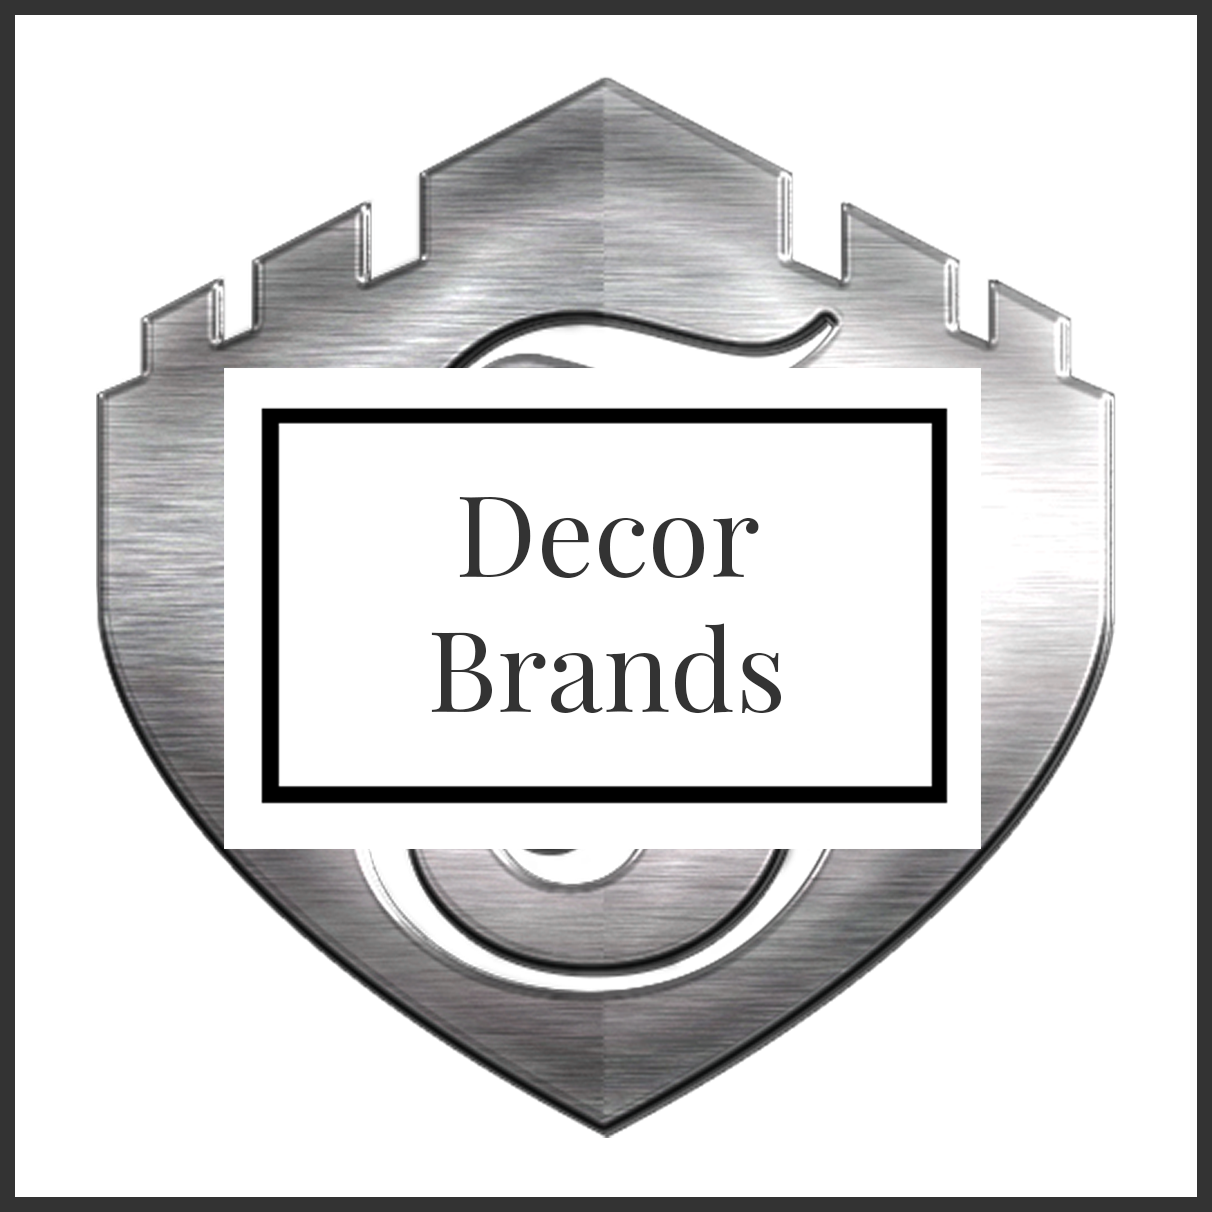 Decor Brands